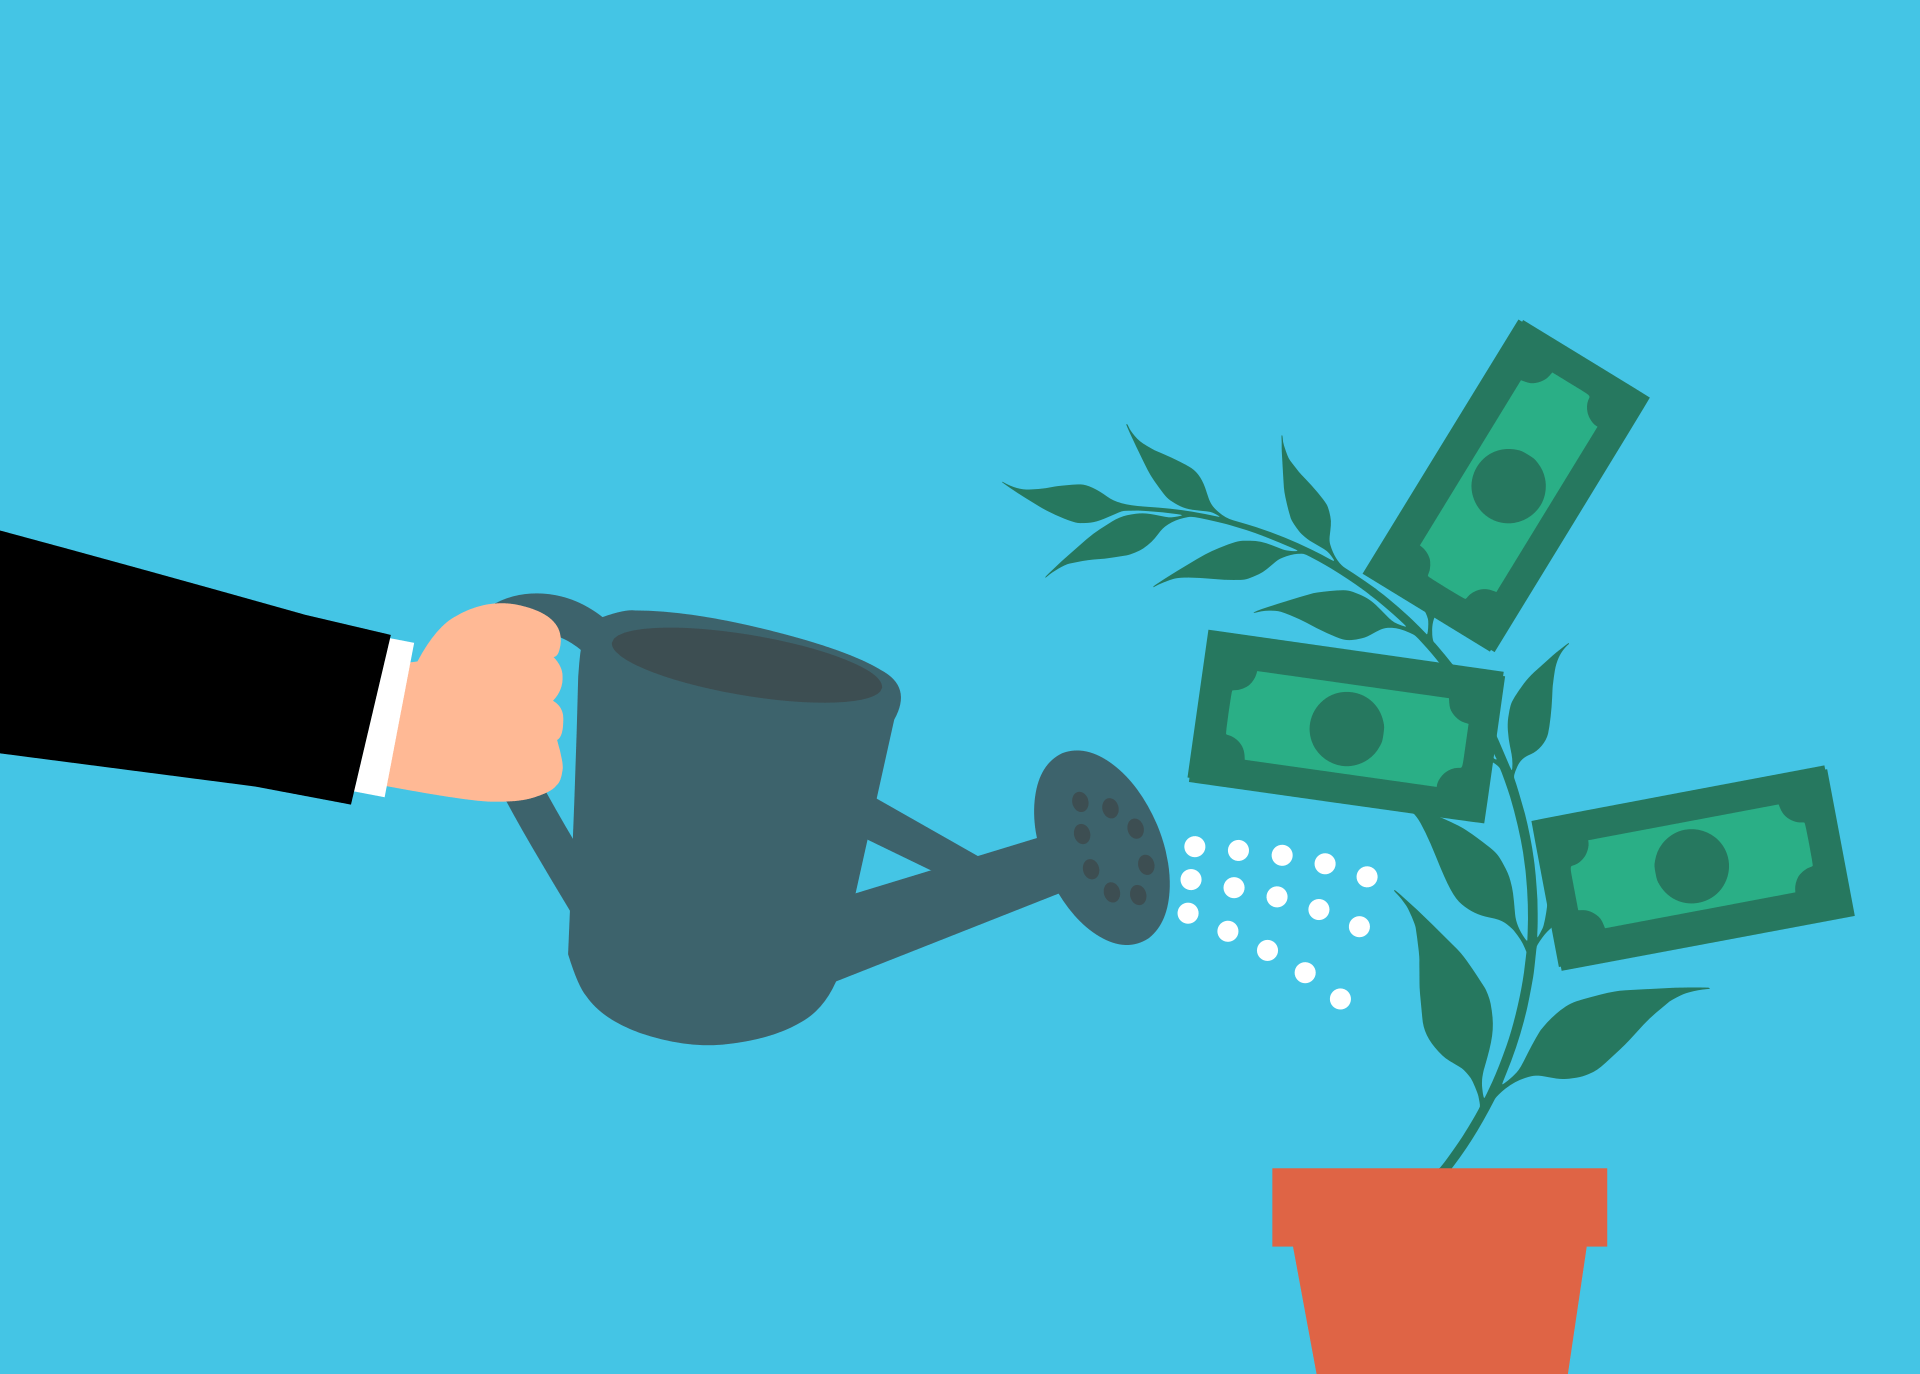 How to invest $200k wisely